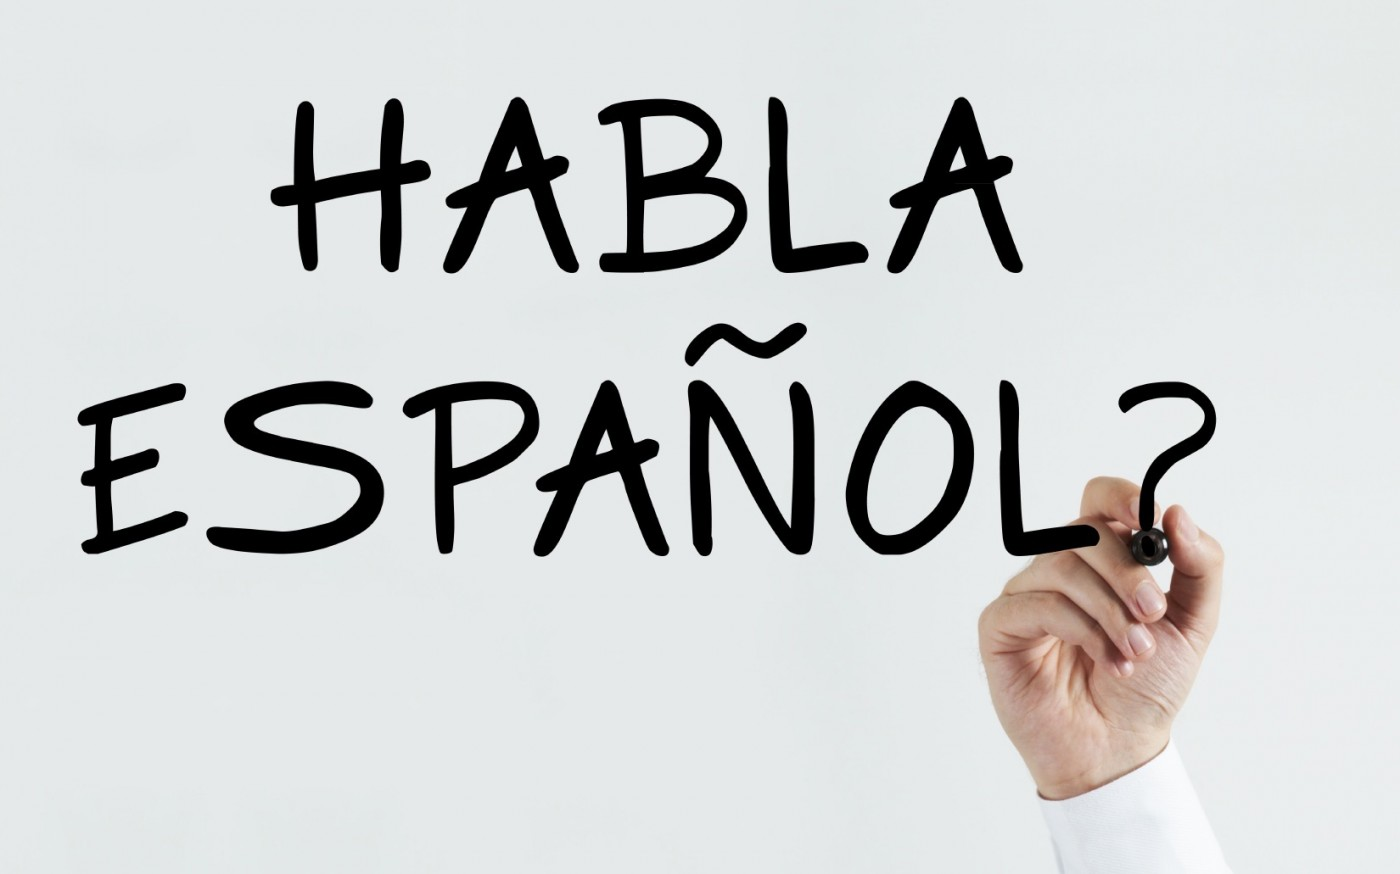 014 Translate Essay To Spanish Example English Translation Challenges Hero Image Staggering My Into What Does Mean In 1400